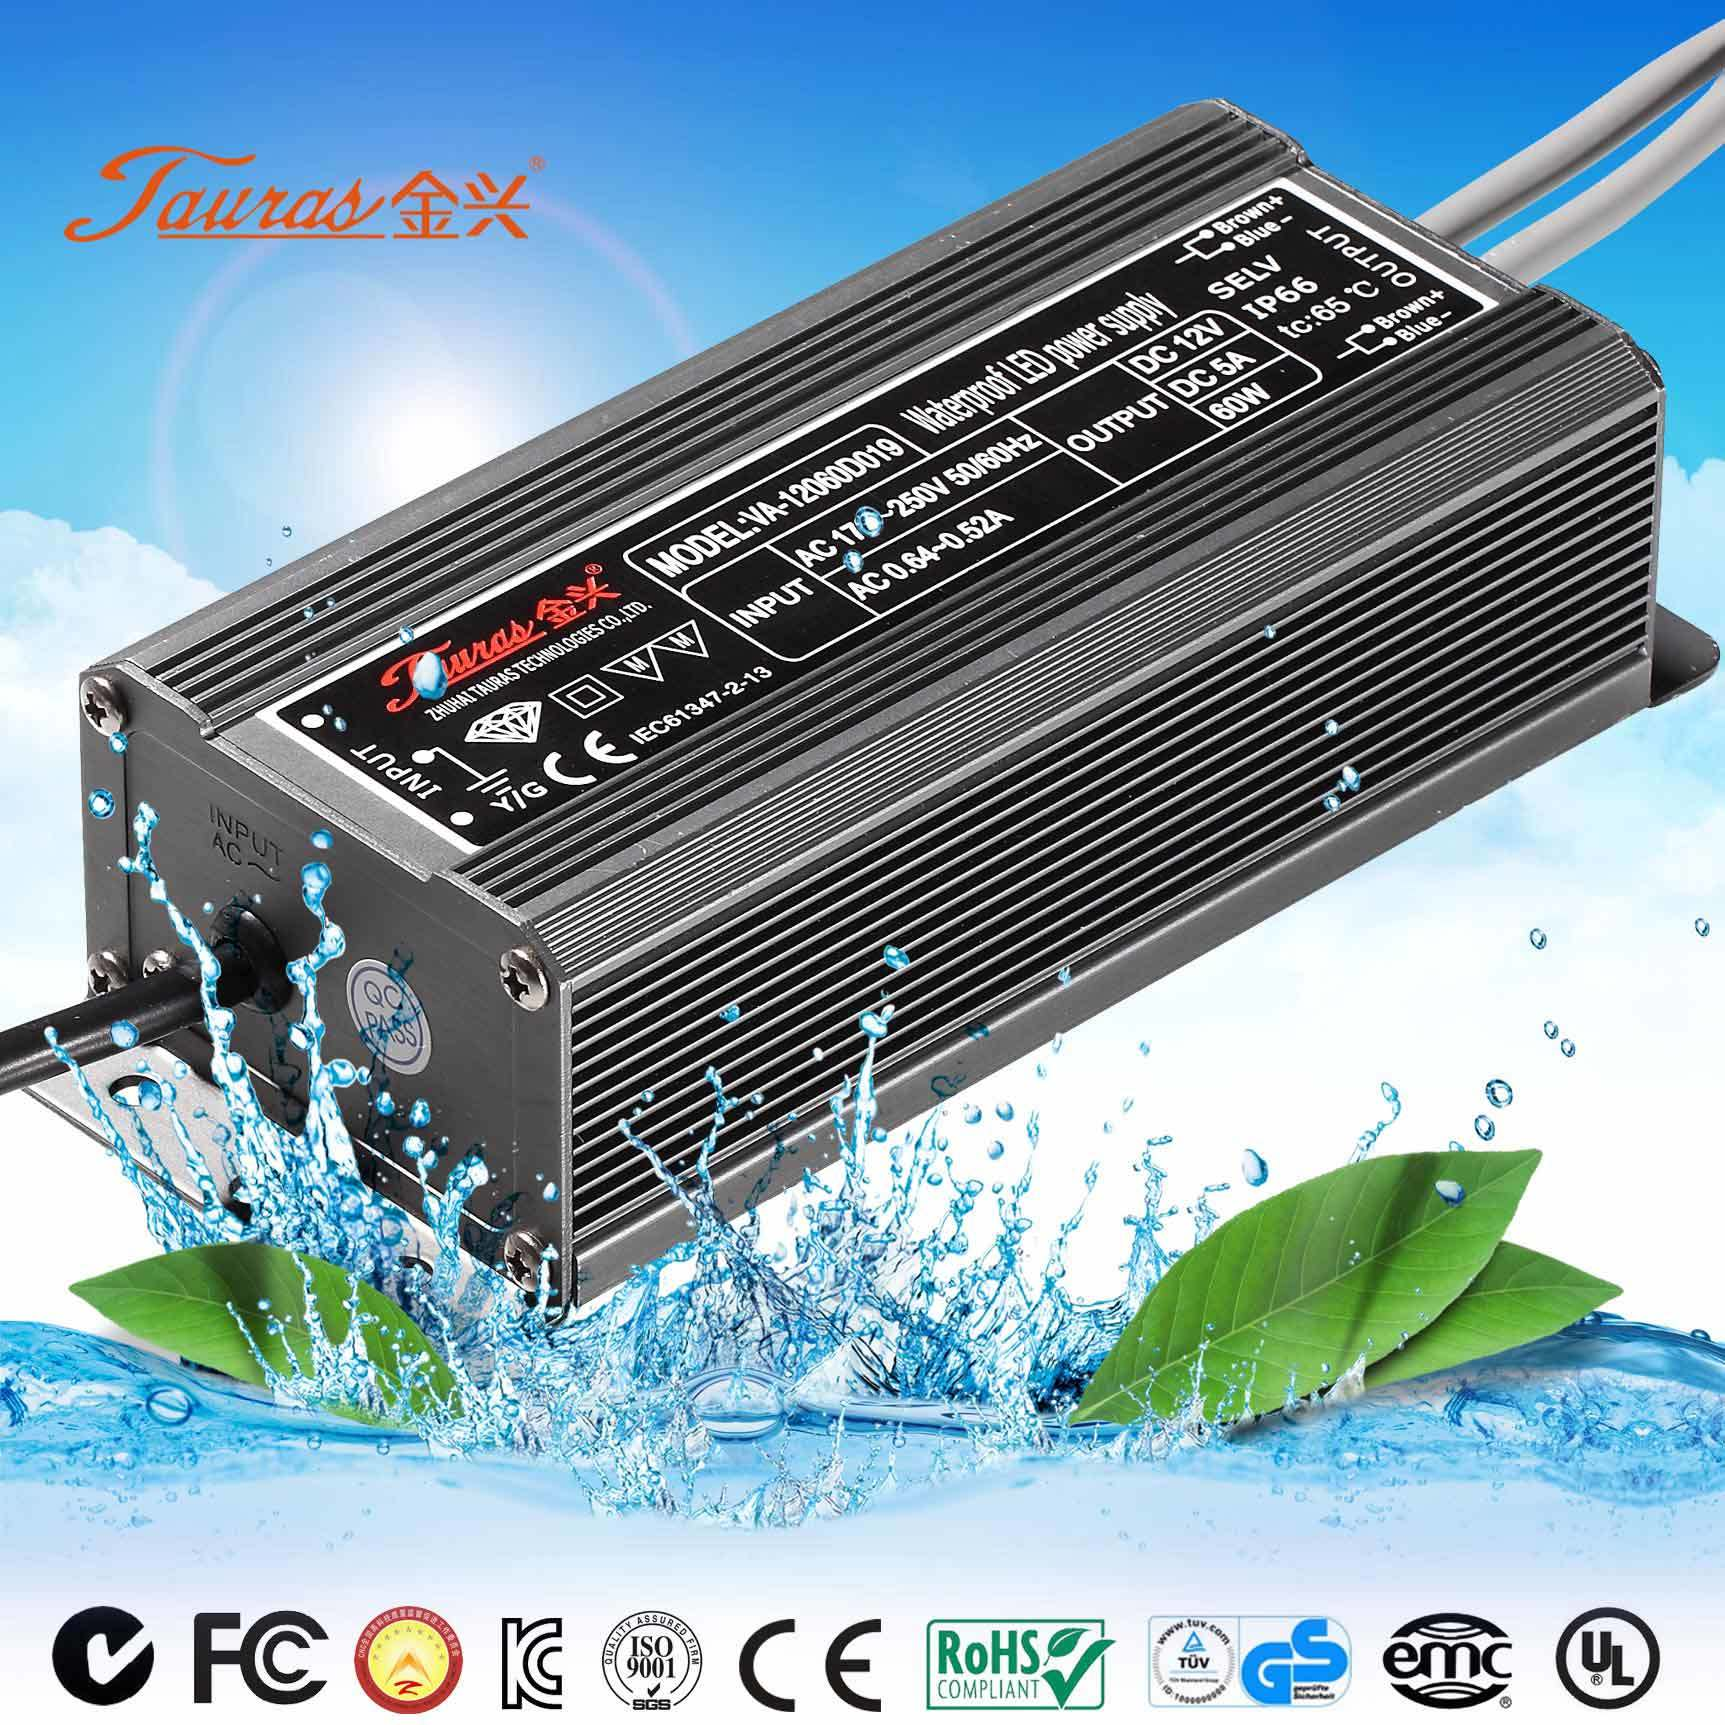 Kc Approval 12V 60W LED Power Supply